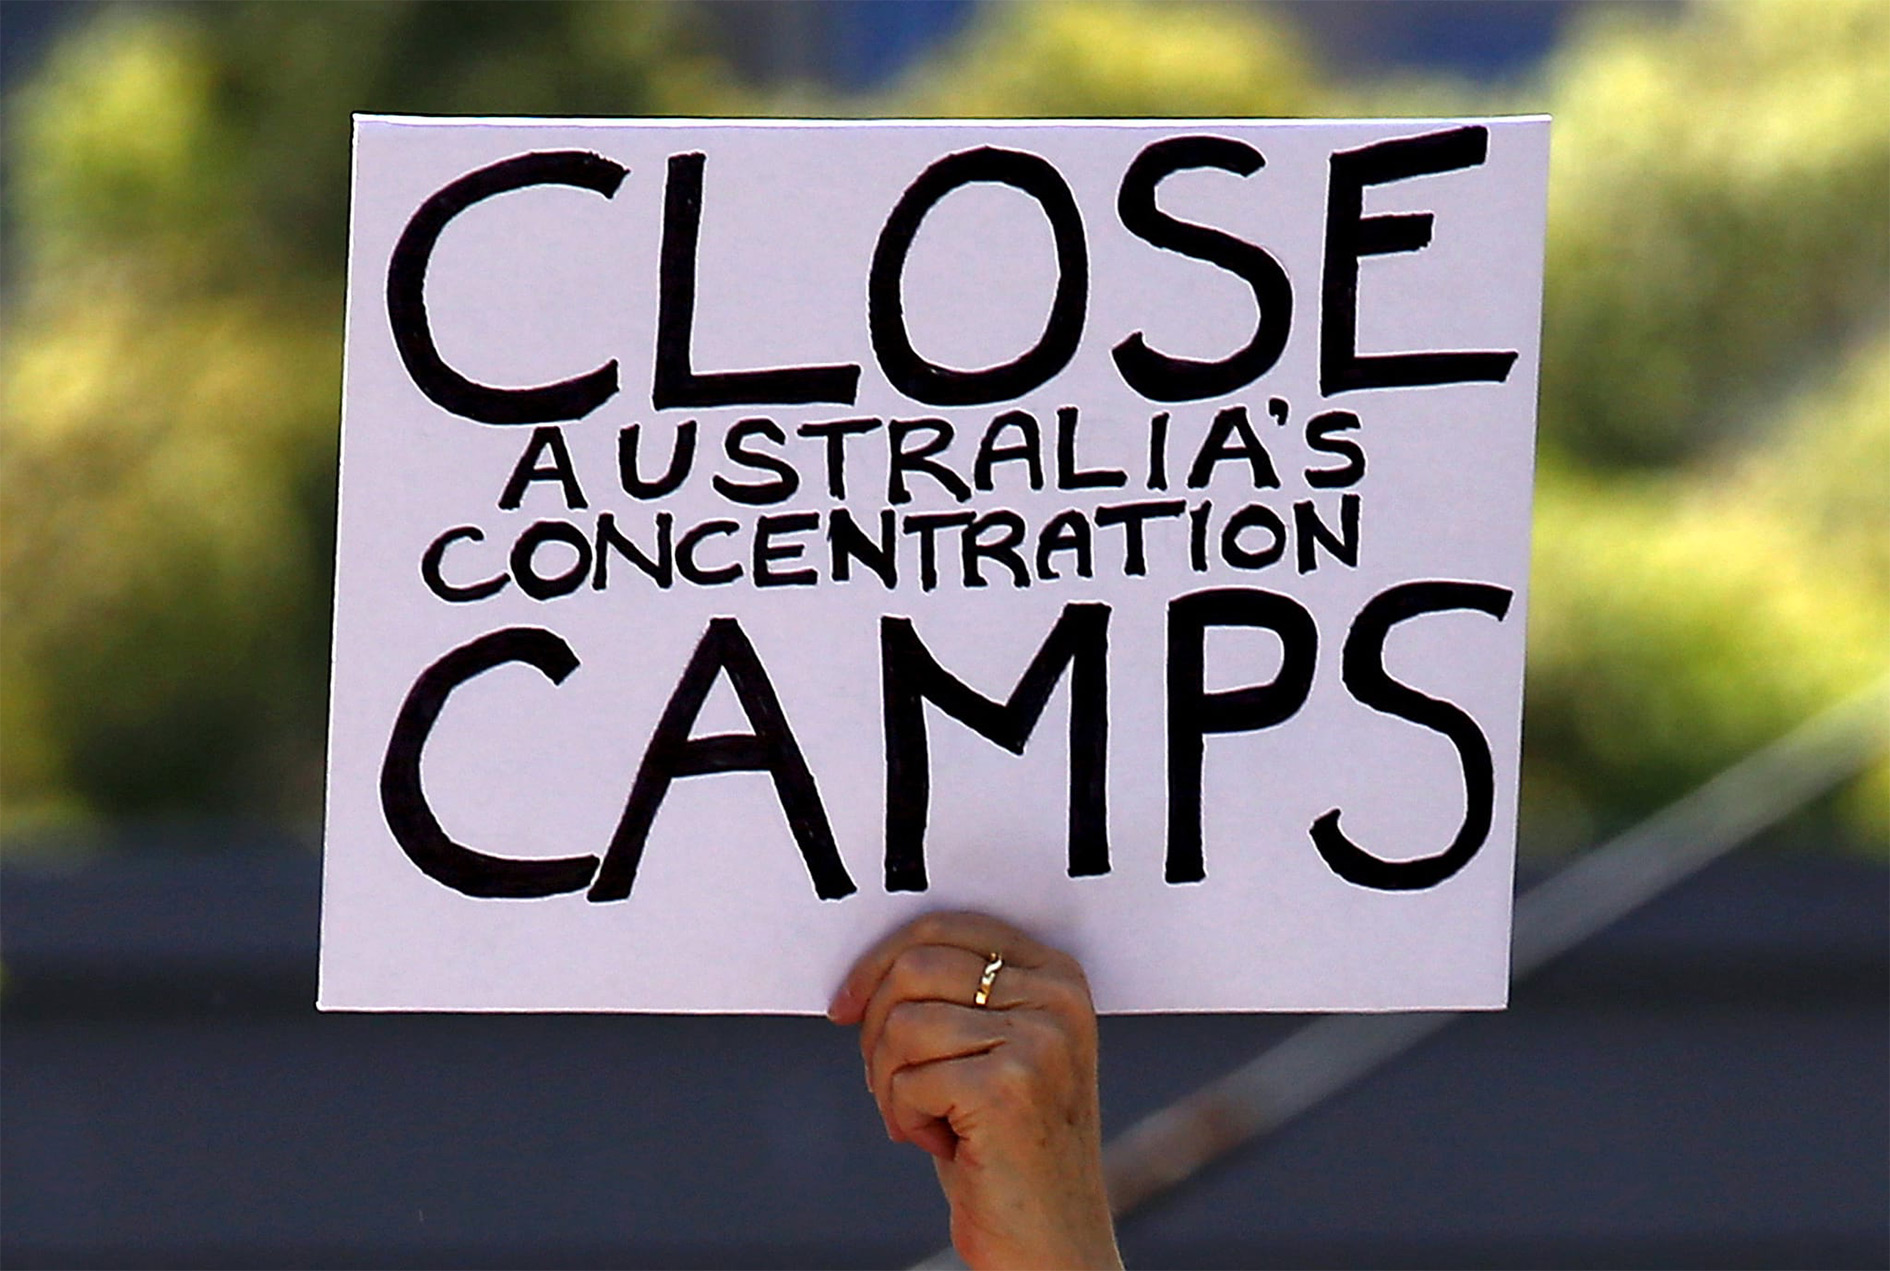 A protester holds a placard during a rally in support of refugees in central Sydney, Australia, 19 October 2015.